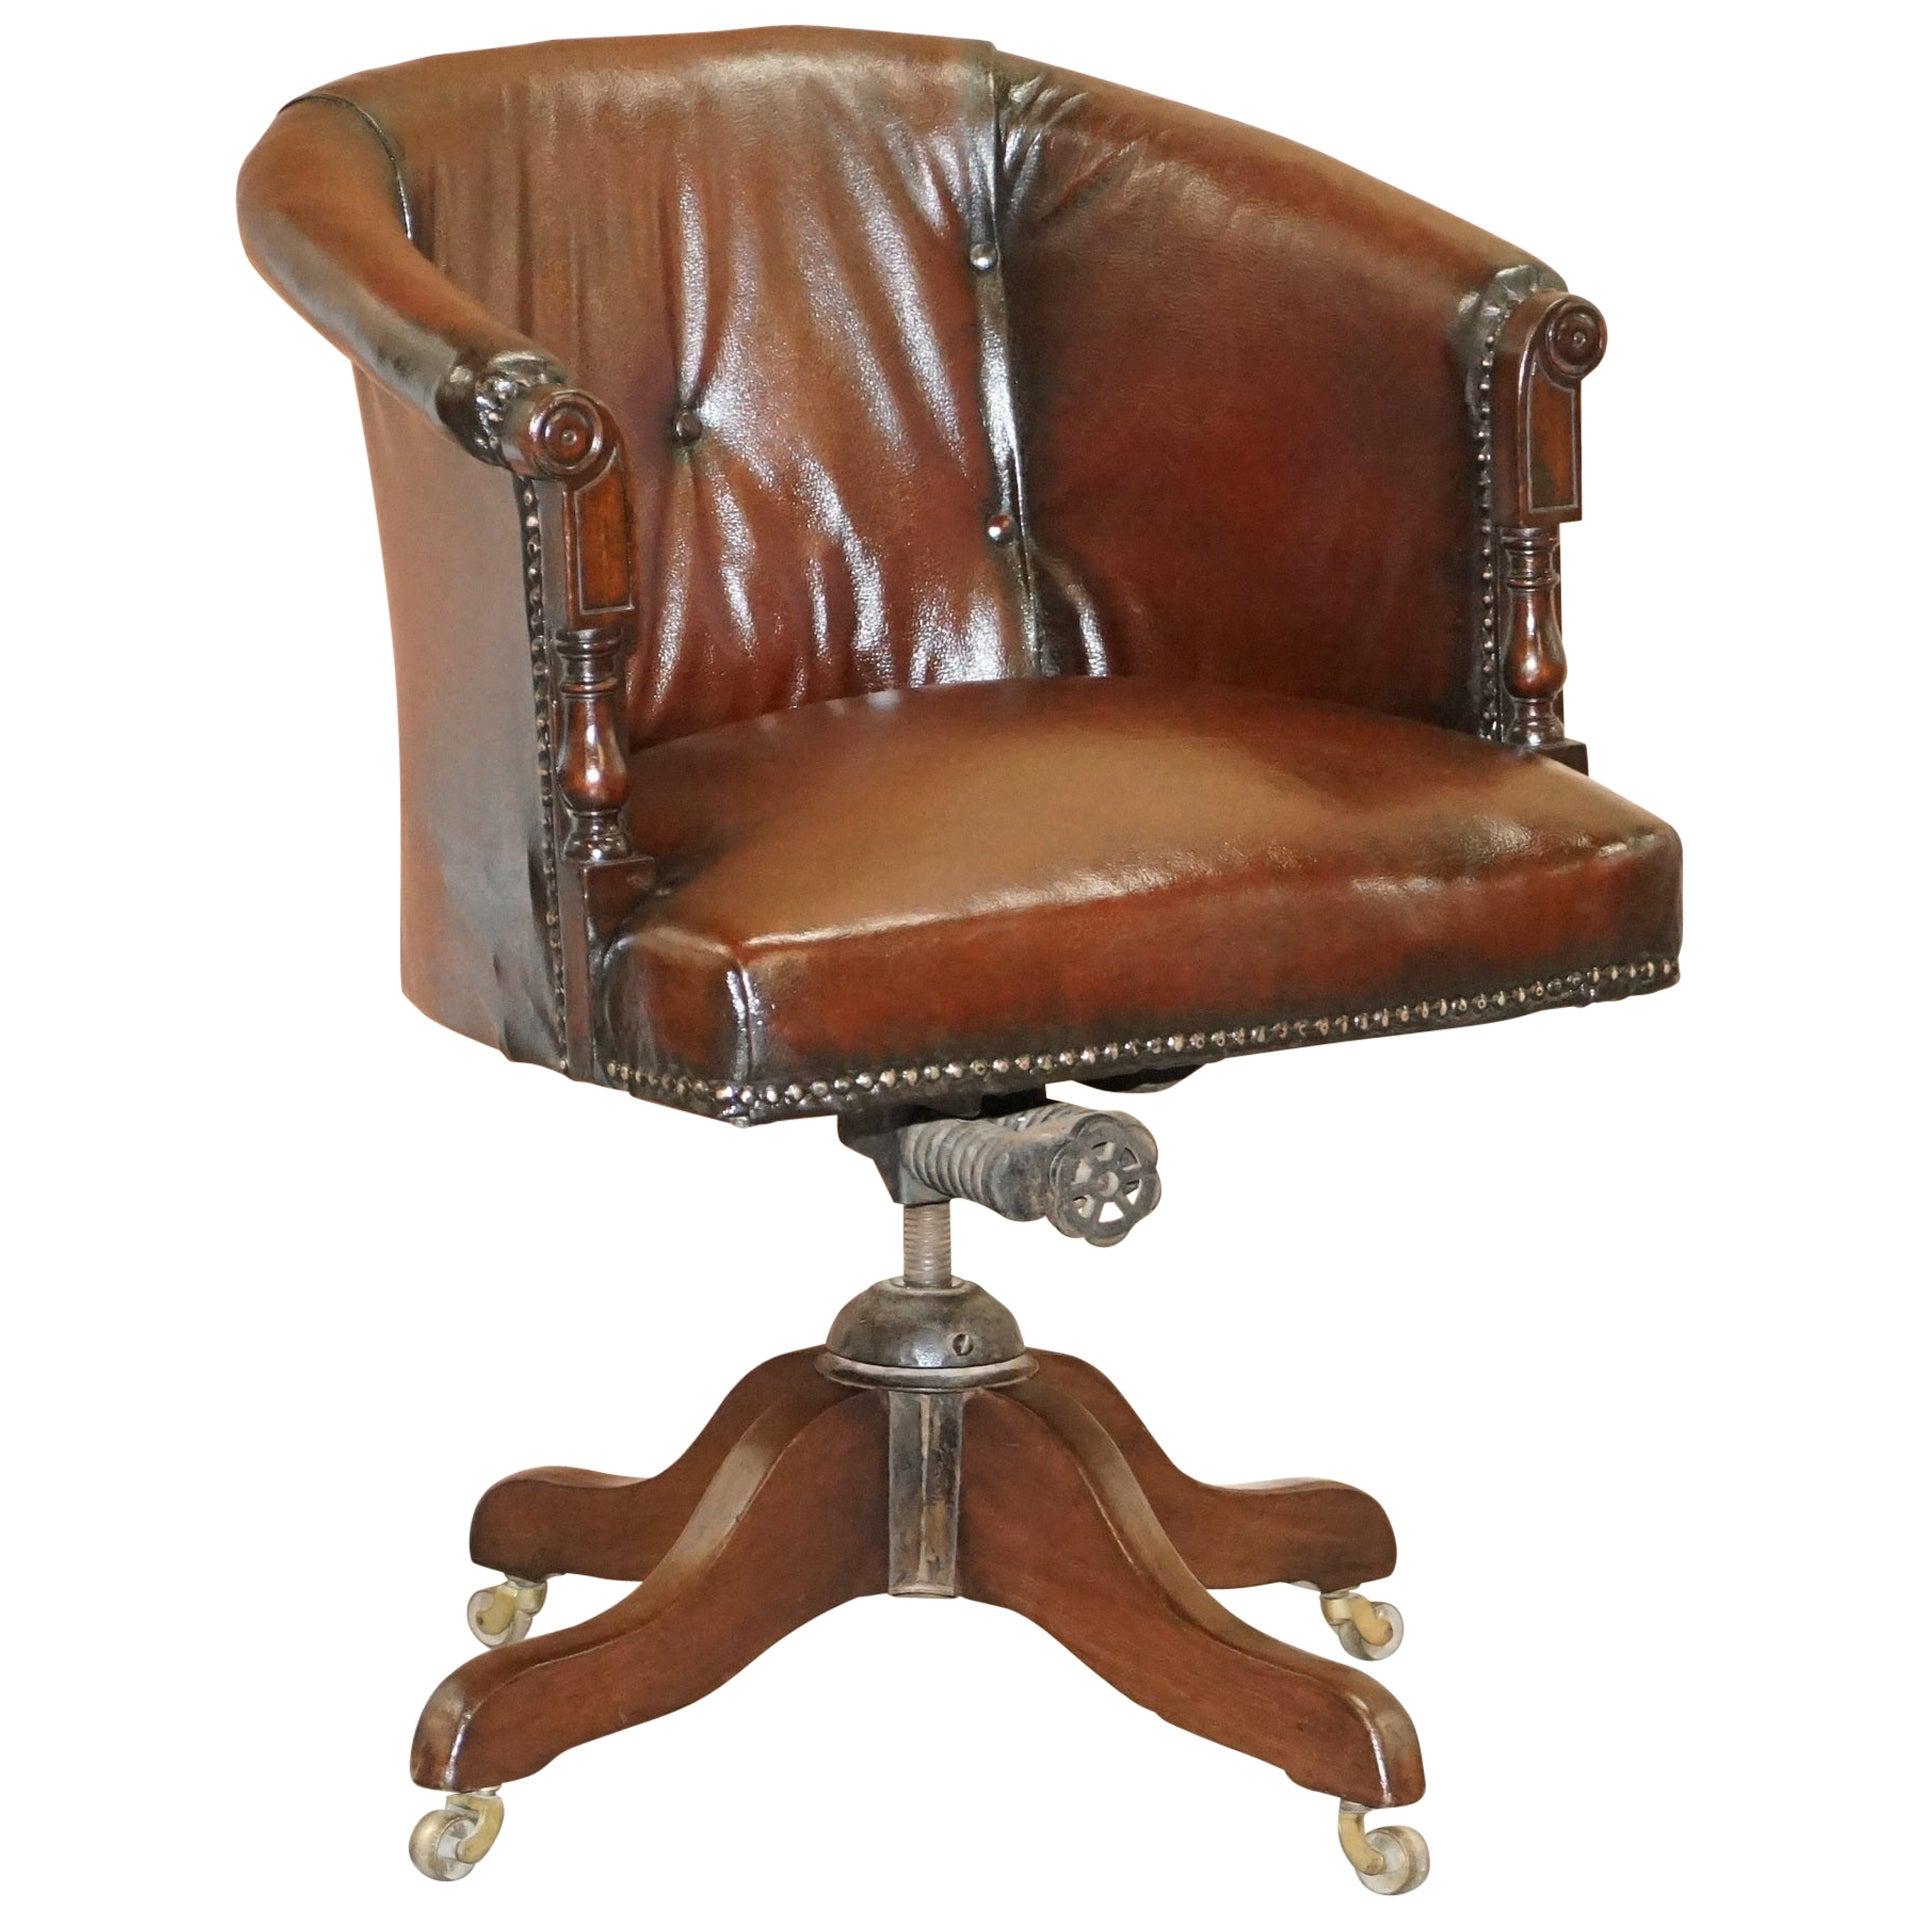 Chesterfield circa 1880 Restored Brown Leather Barrel Back Captains Chair